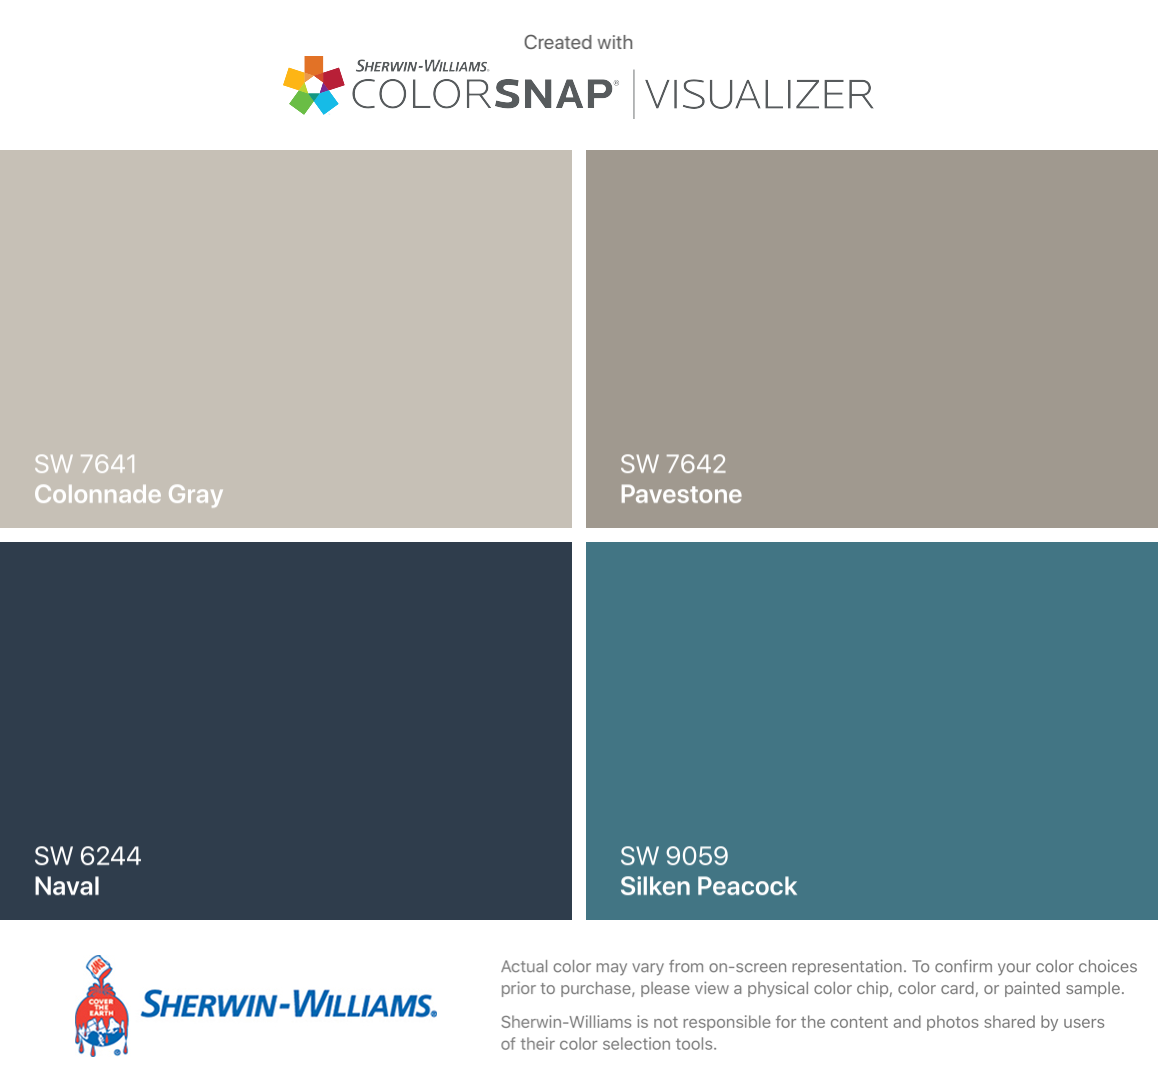 I found these colors with ColorSnap® Visualizer for iPhone by Sherwin-Williams: Colonnade Gray (SW 7641), Naval (SW 6244), Pavestone (SW 7642), Silken Peacock (SW 9059). #cityloftsherwinwilliams